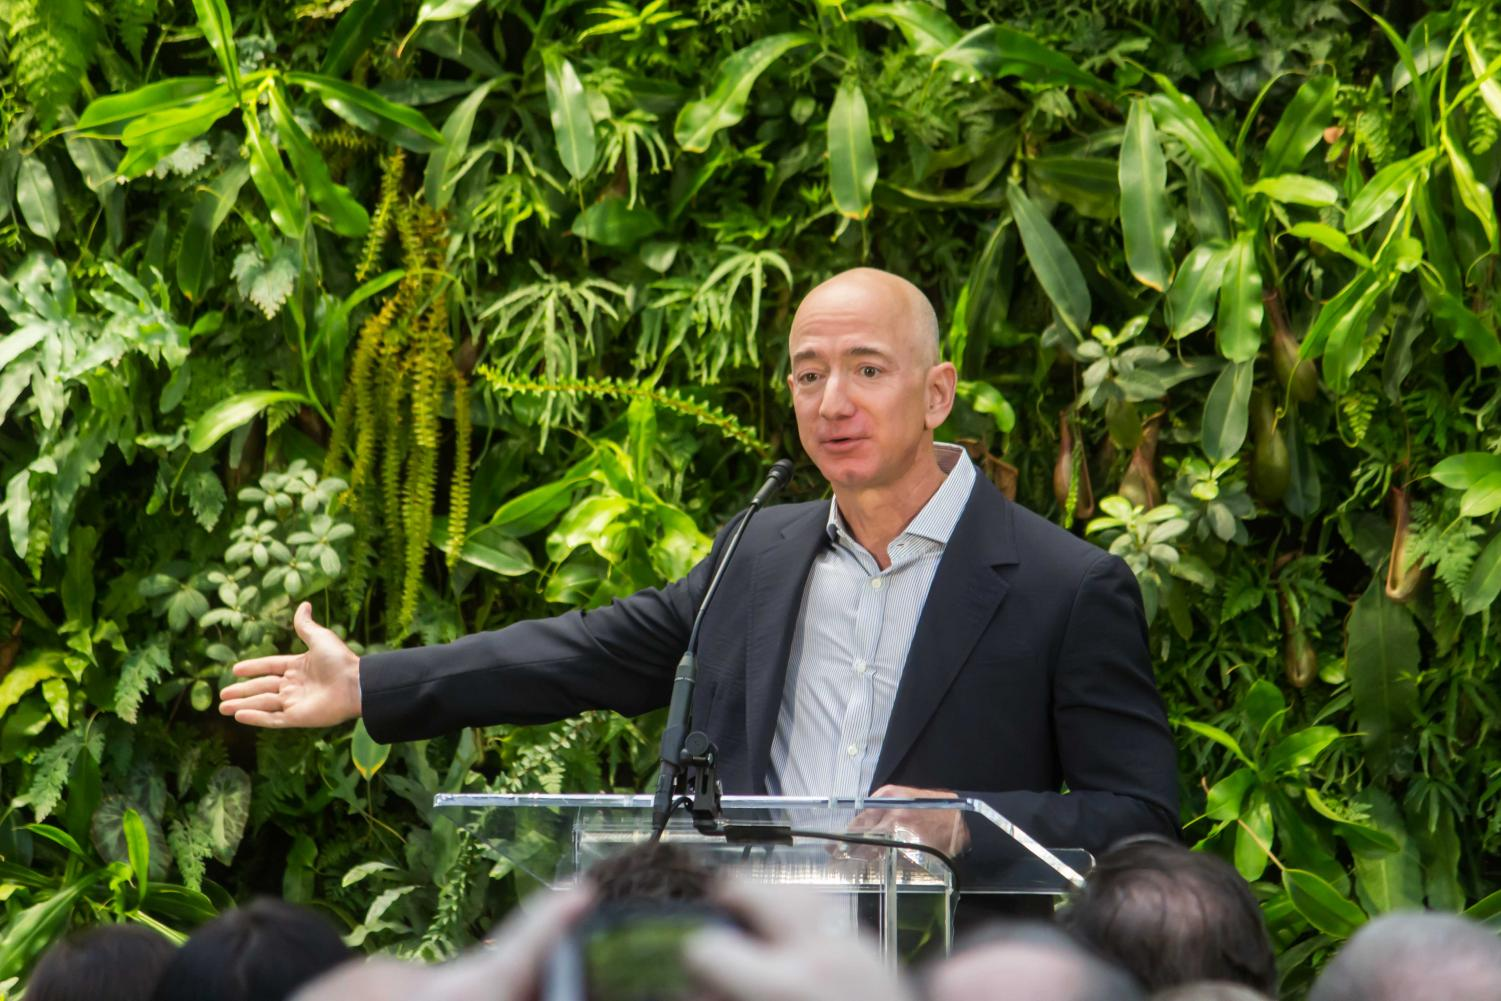 Jeff Bezos speaks at the Amazon Spheres Grand Opening in Seattle on Jan. 28, 2018. Columnist Abril believes billionaires like Bezos, who earns more than $1.5 billion per week according to Business Insider, shouldn't exist in today's poverty-filled society.